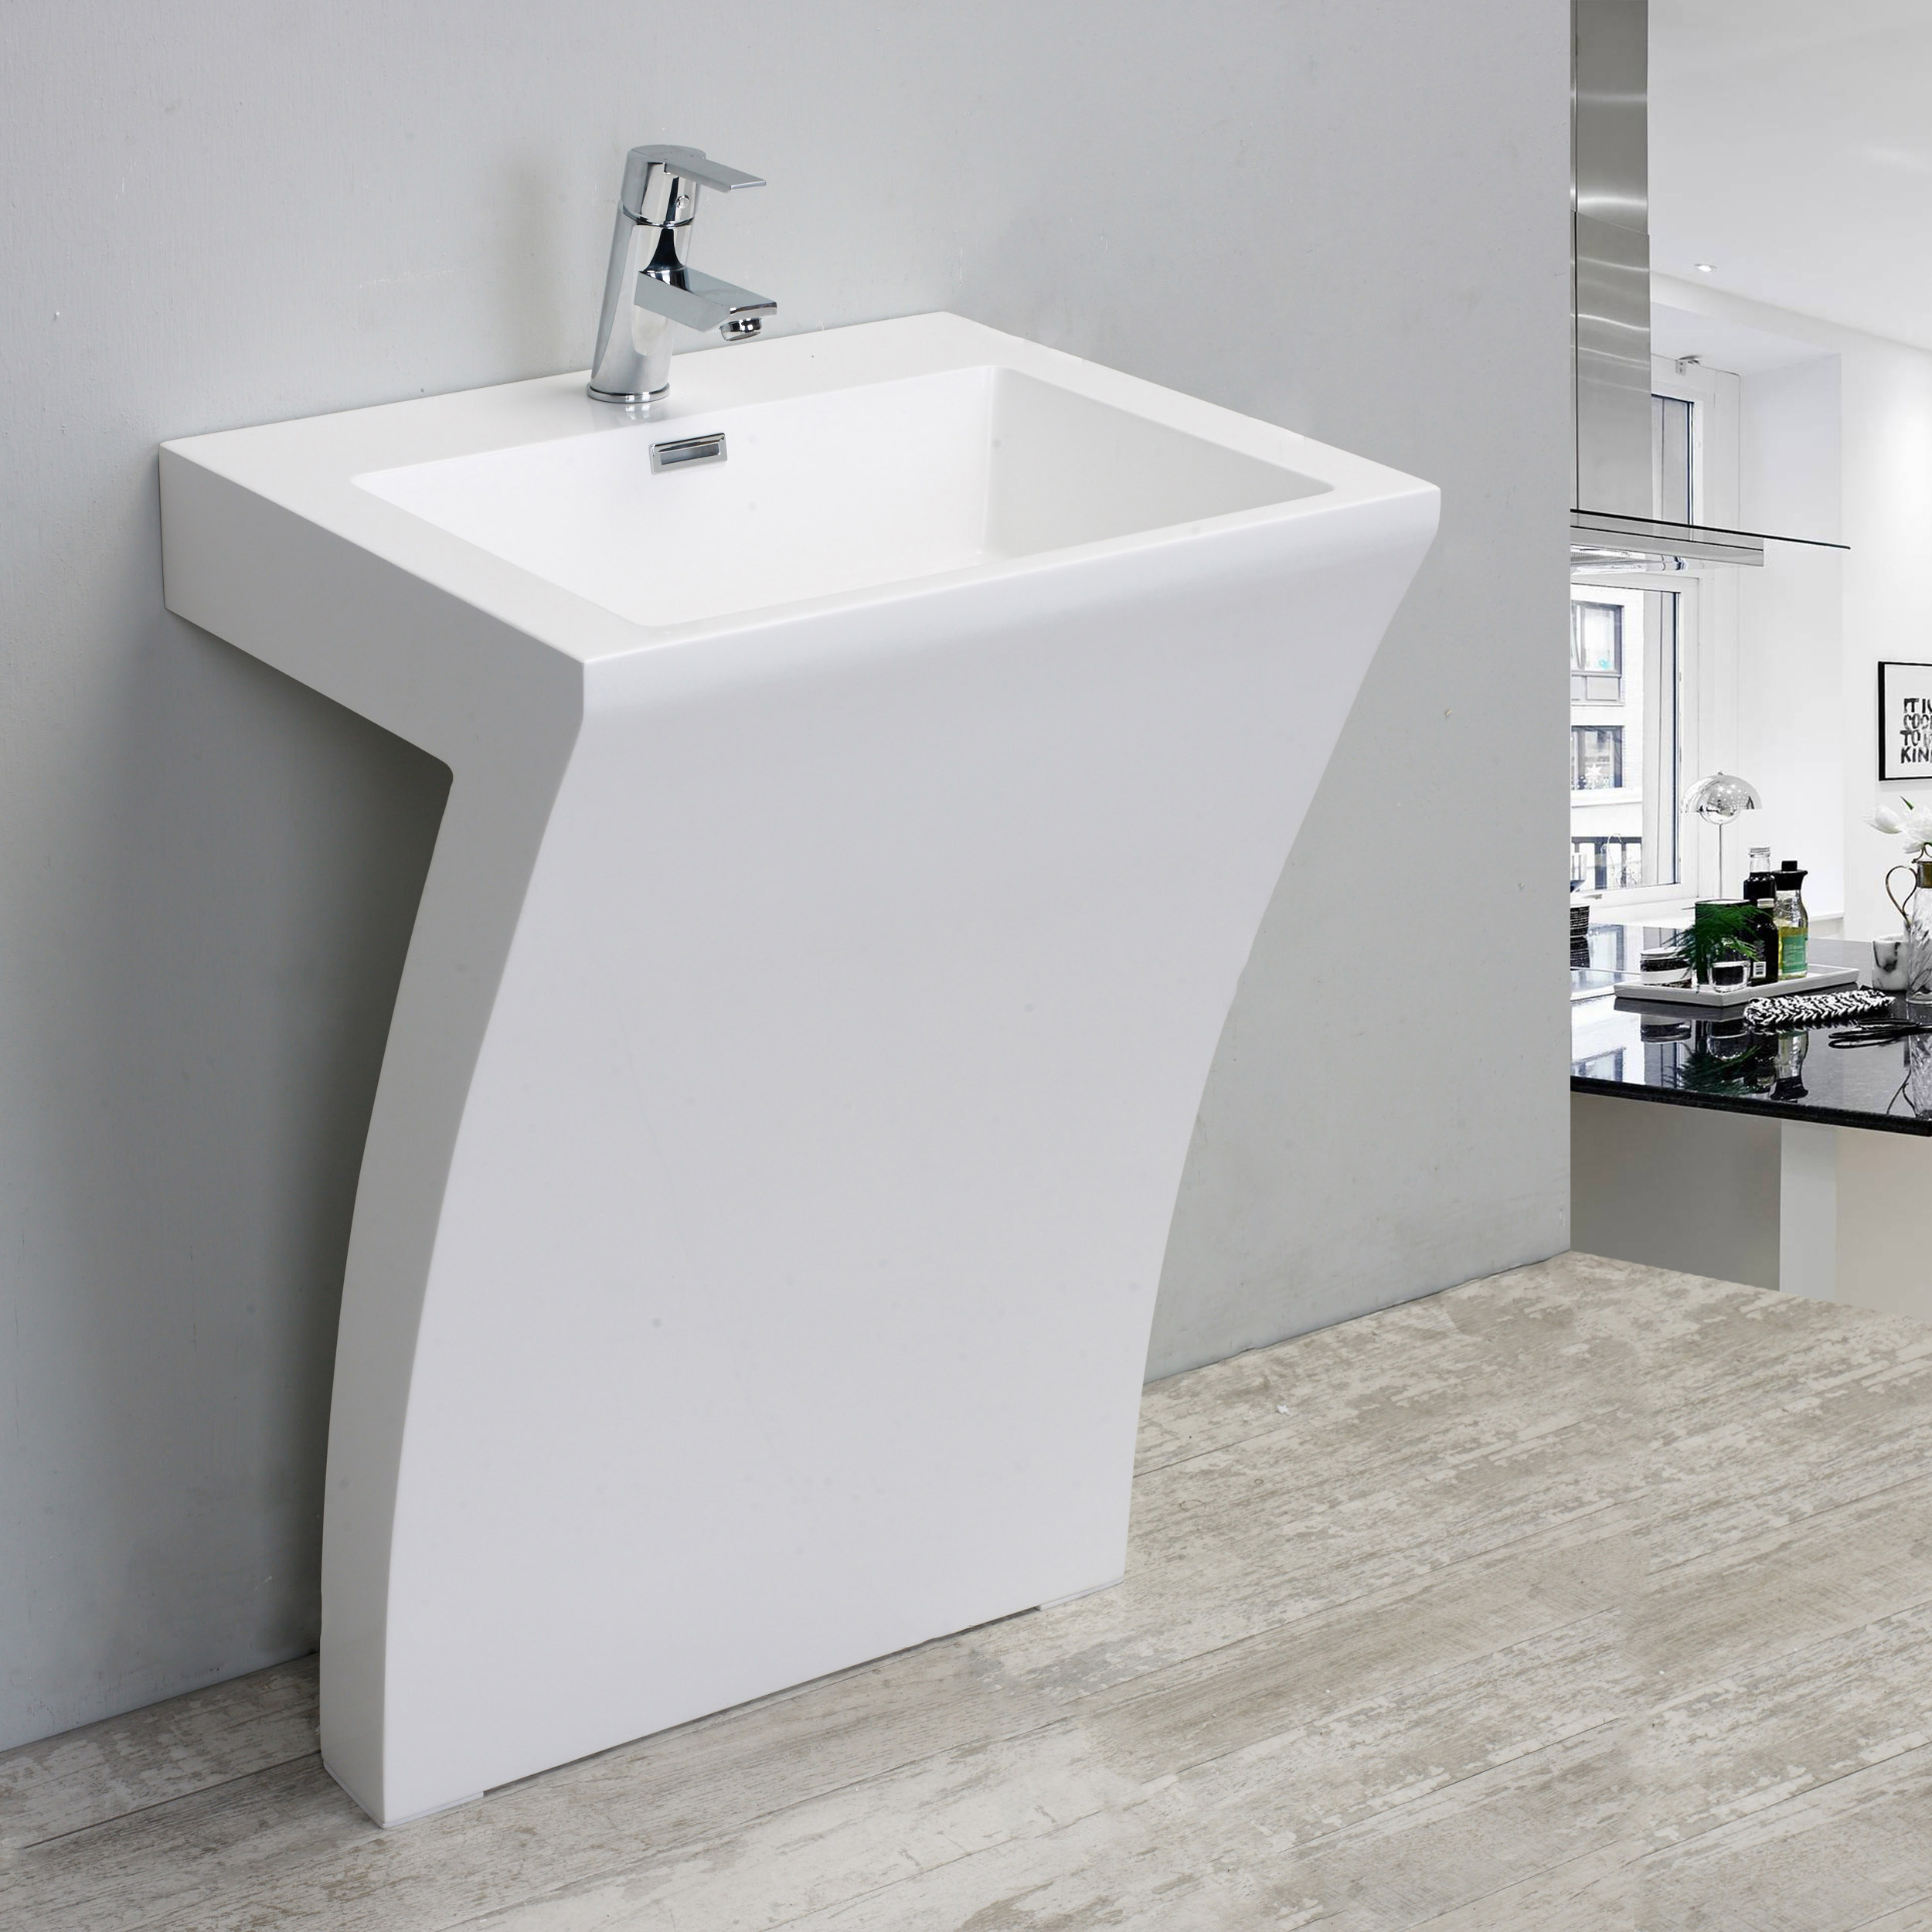 "High Quality Bathroom Vanity: Eviva Numero 24"" White Bathroom Vanity One Piece High"